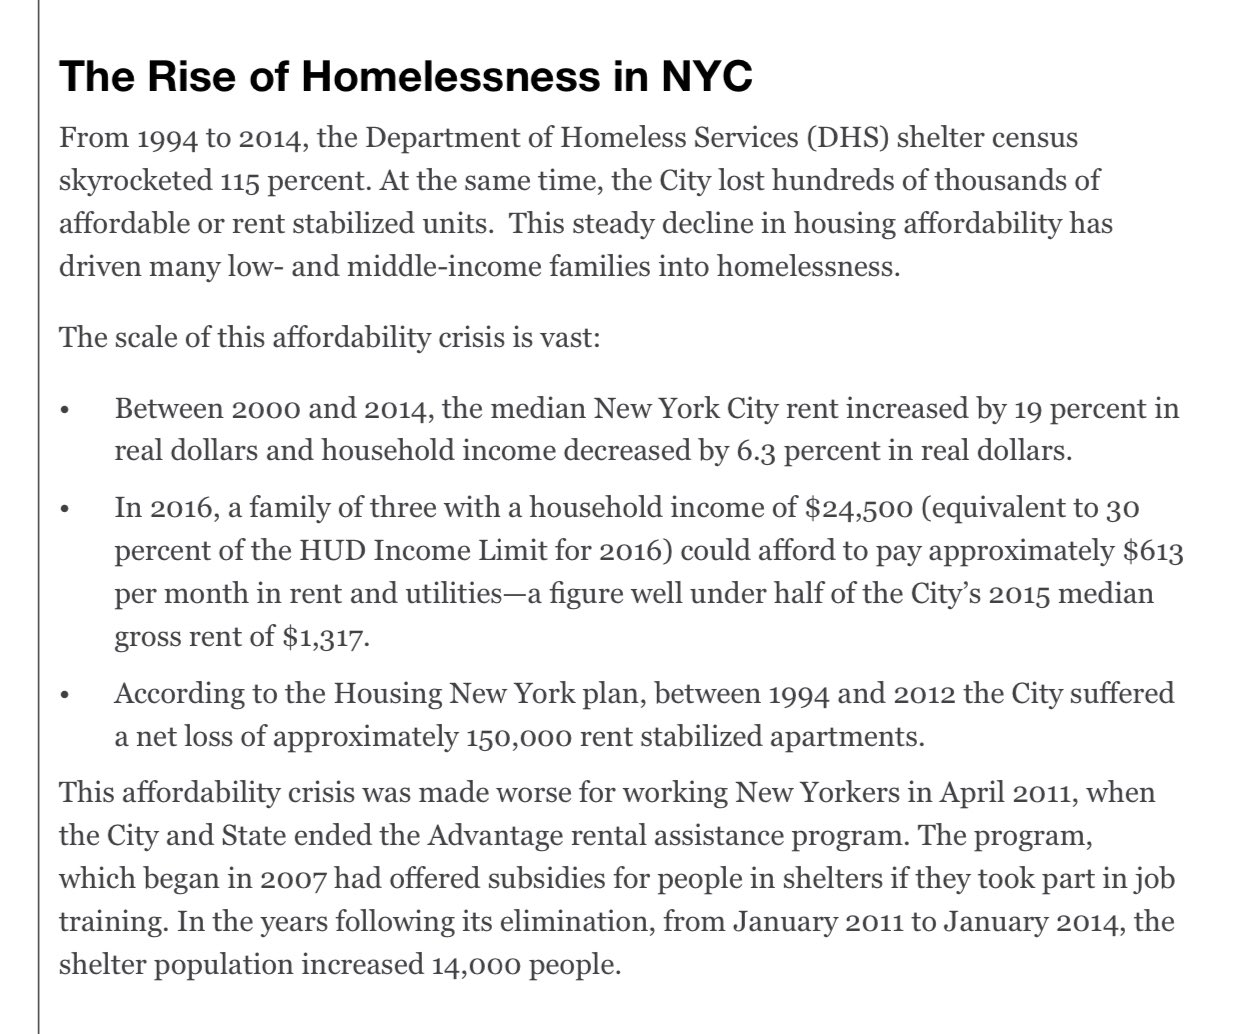 Here's what really happened under Bloomberg (wrt homelessness)  He got rid of 150,000 rent stabilized units, rent increased by 19%, household incomes decreased, and between Guilliani and Bloomberg, who focused more on making NYC a luxe tourist spot, shelter census increased 115% https://t.co/jUTMT3mLfw